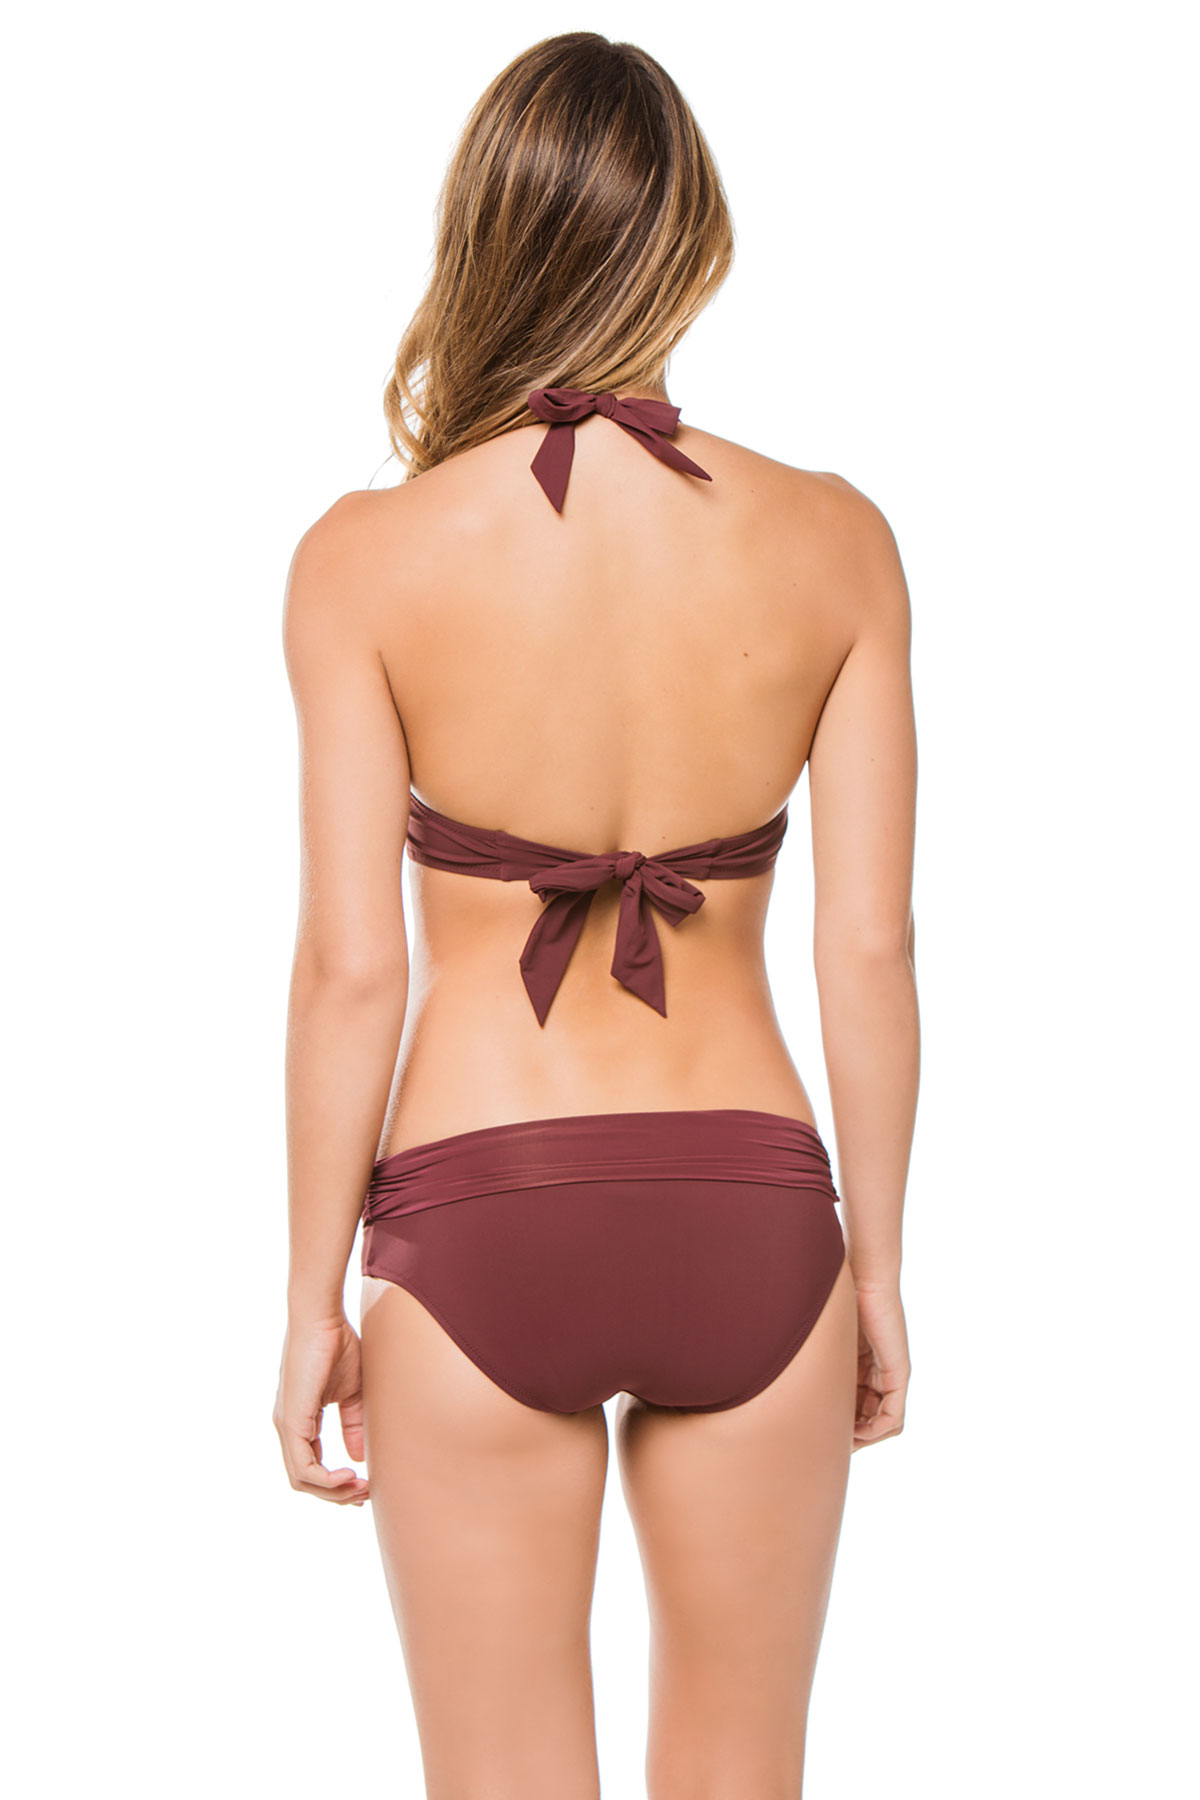 Ruched Halter Bikini Top (D-G Cup) - Burgundy 2